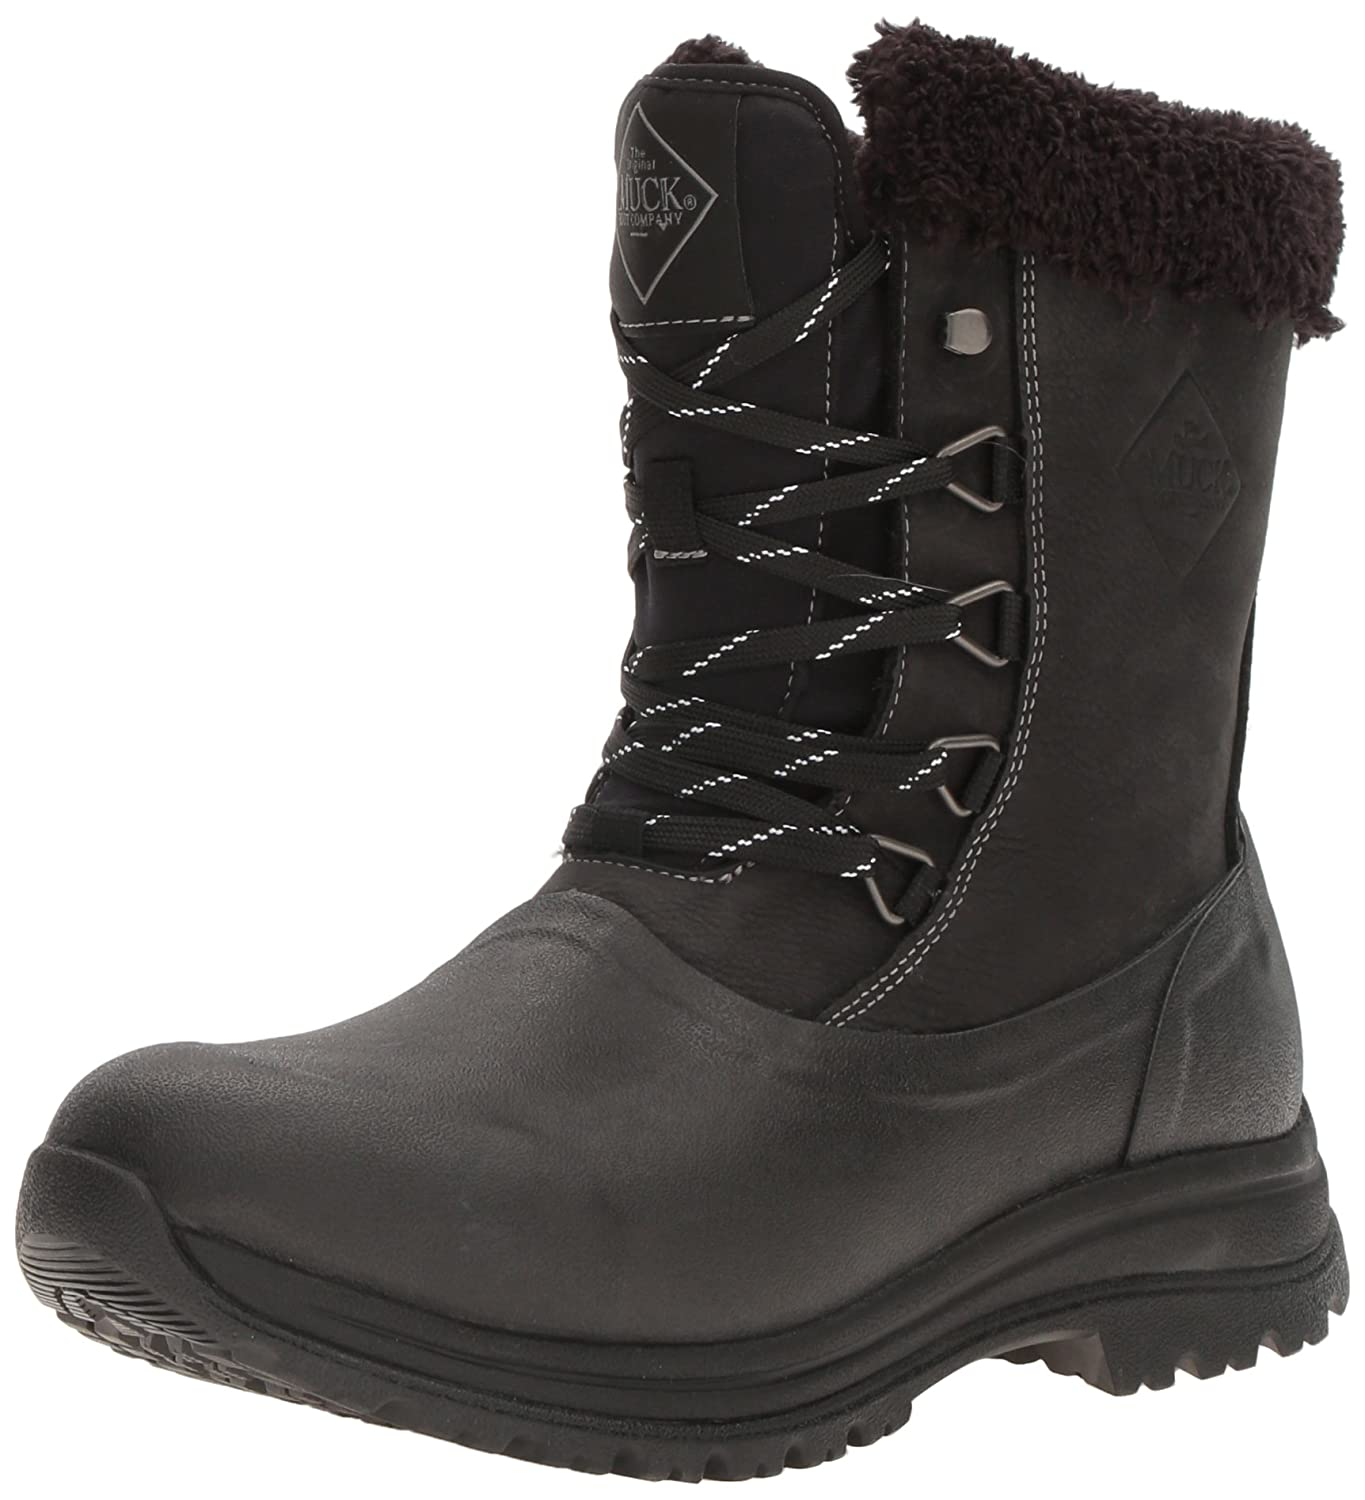 Muck Arctic Après Mid-Height Lace-up Rubber Women's Winter Boots B01GK9485C 6 B(M) US|Black/Charcoal